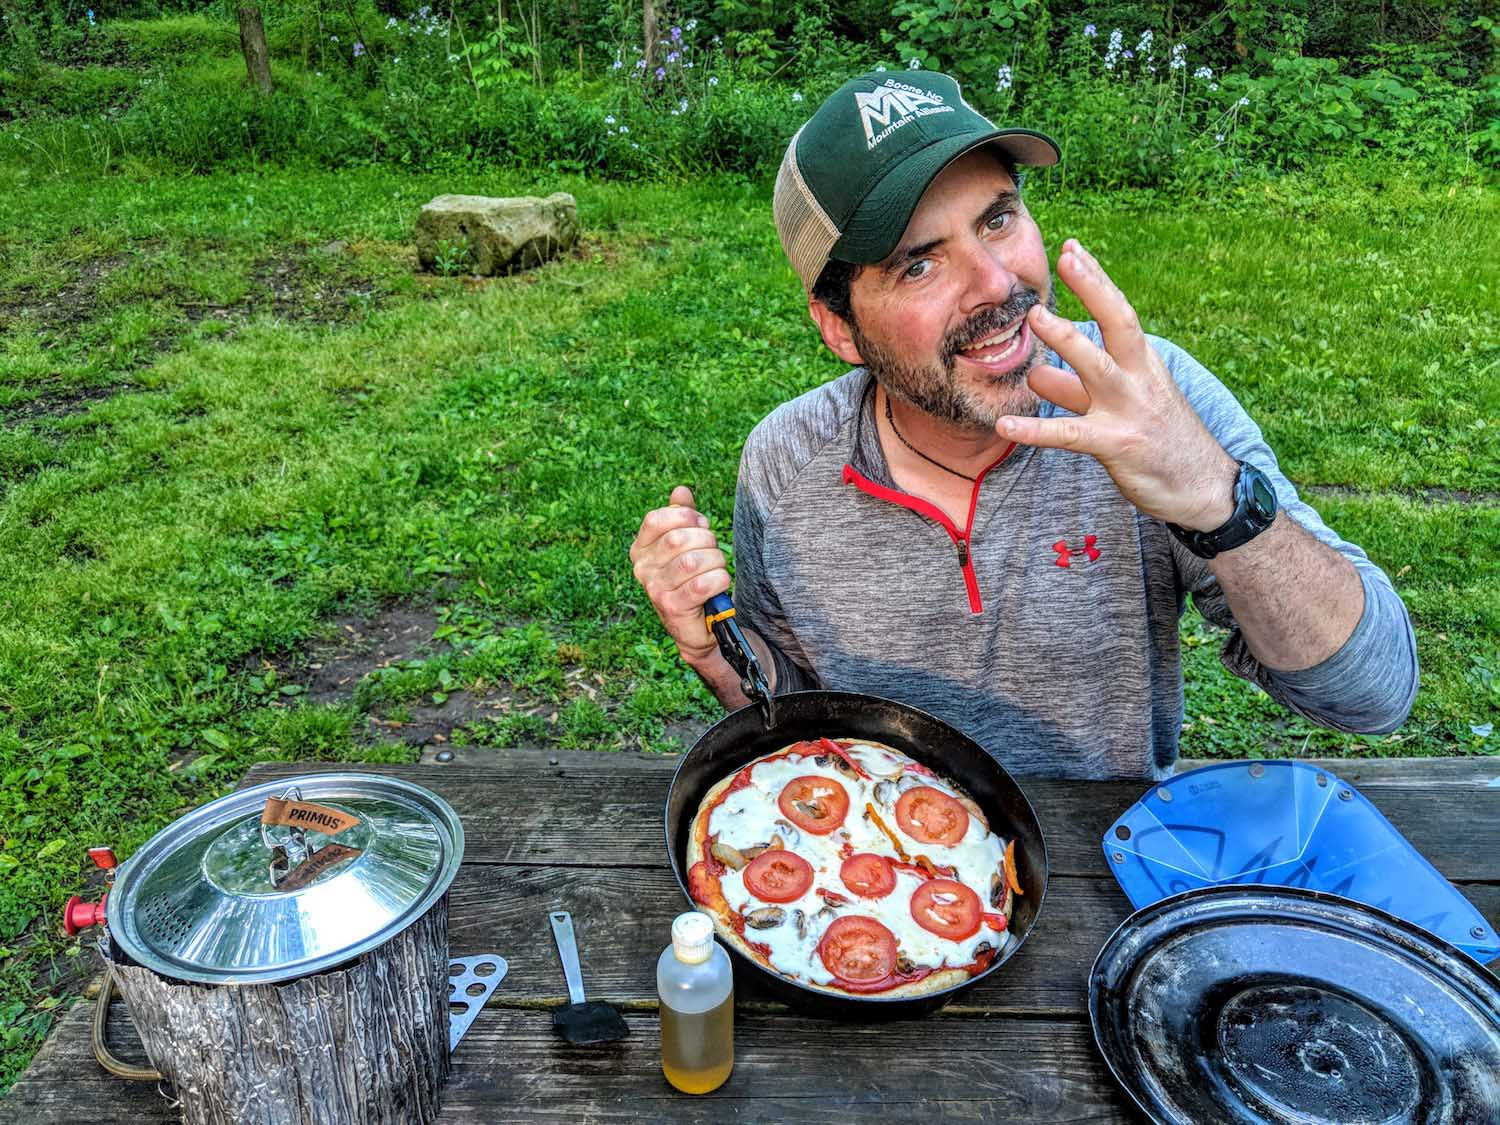 hutch demonstrating his camping kitchen hack for pizza